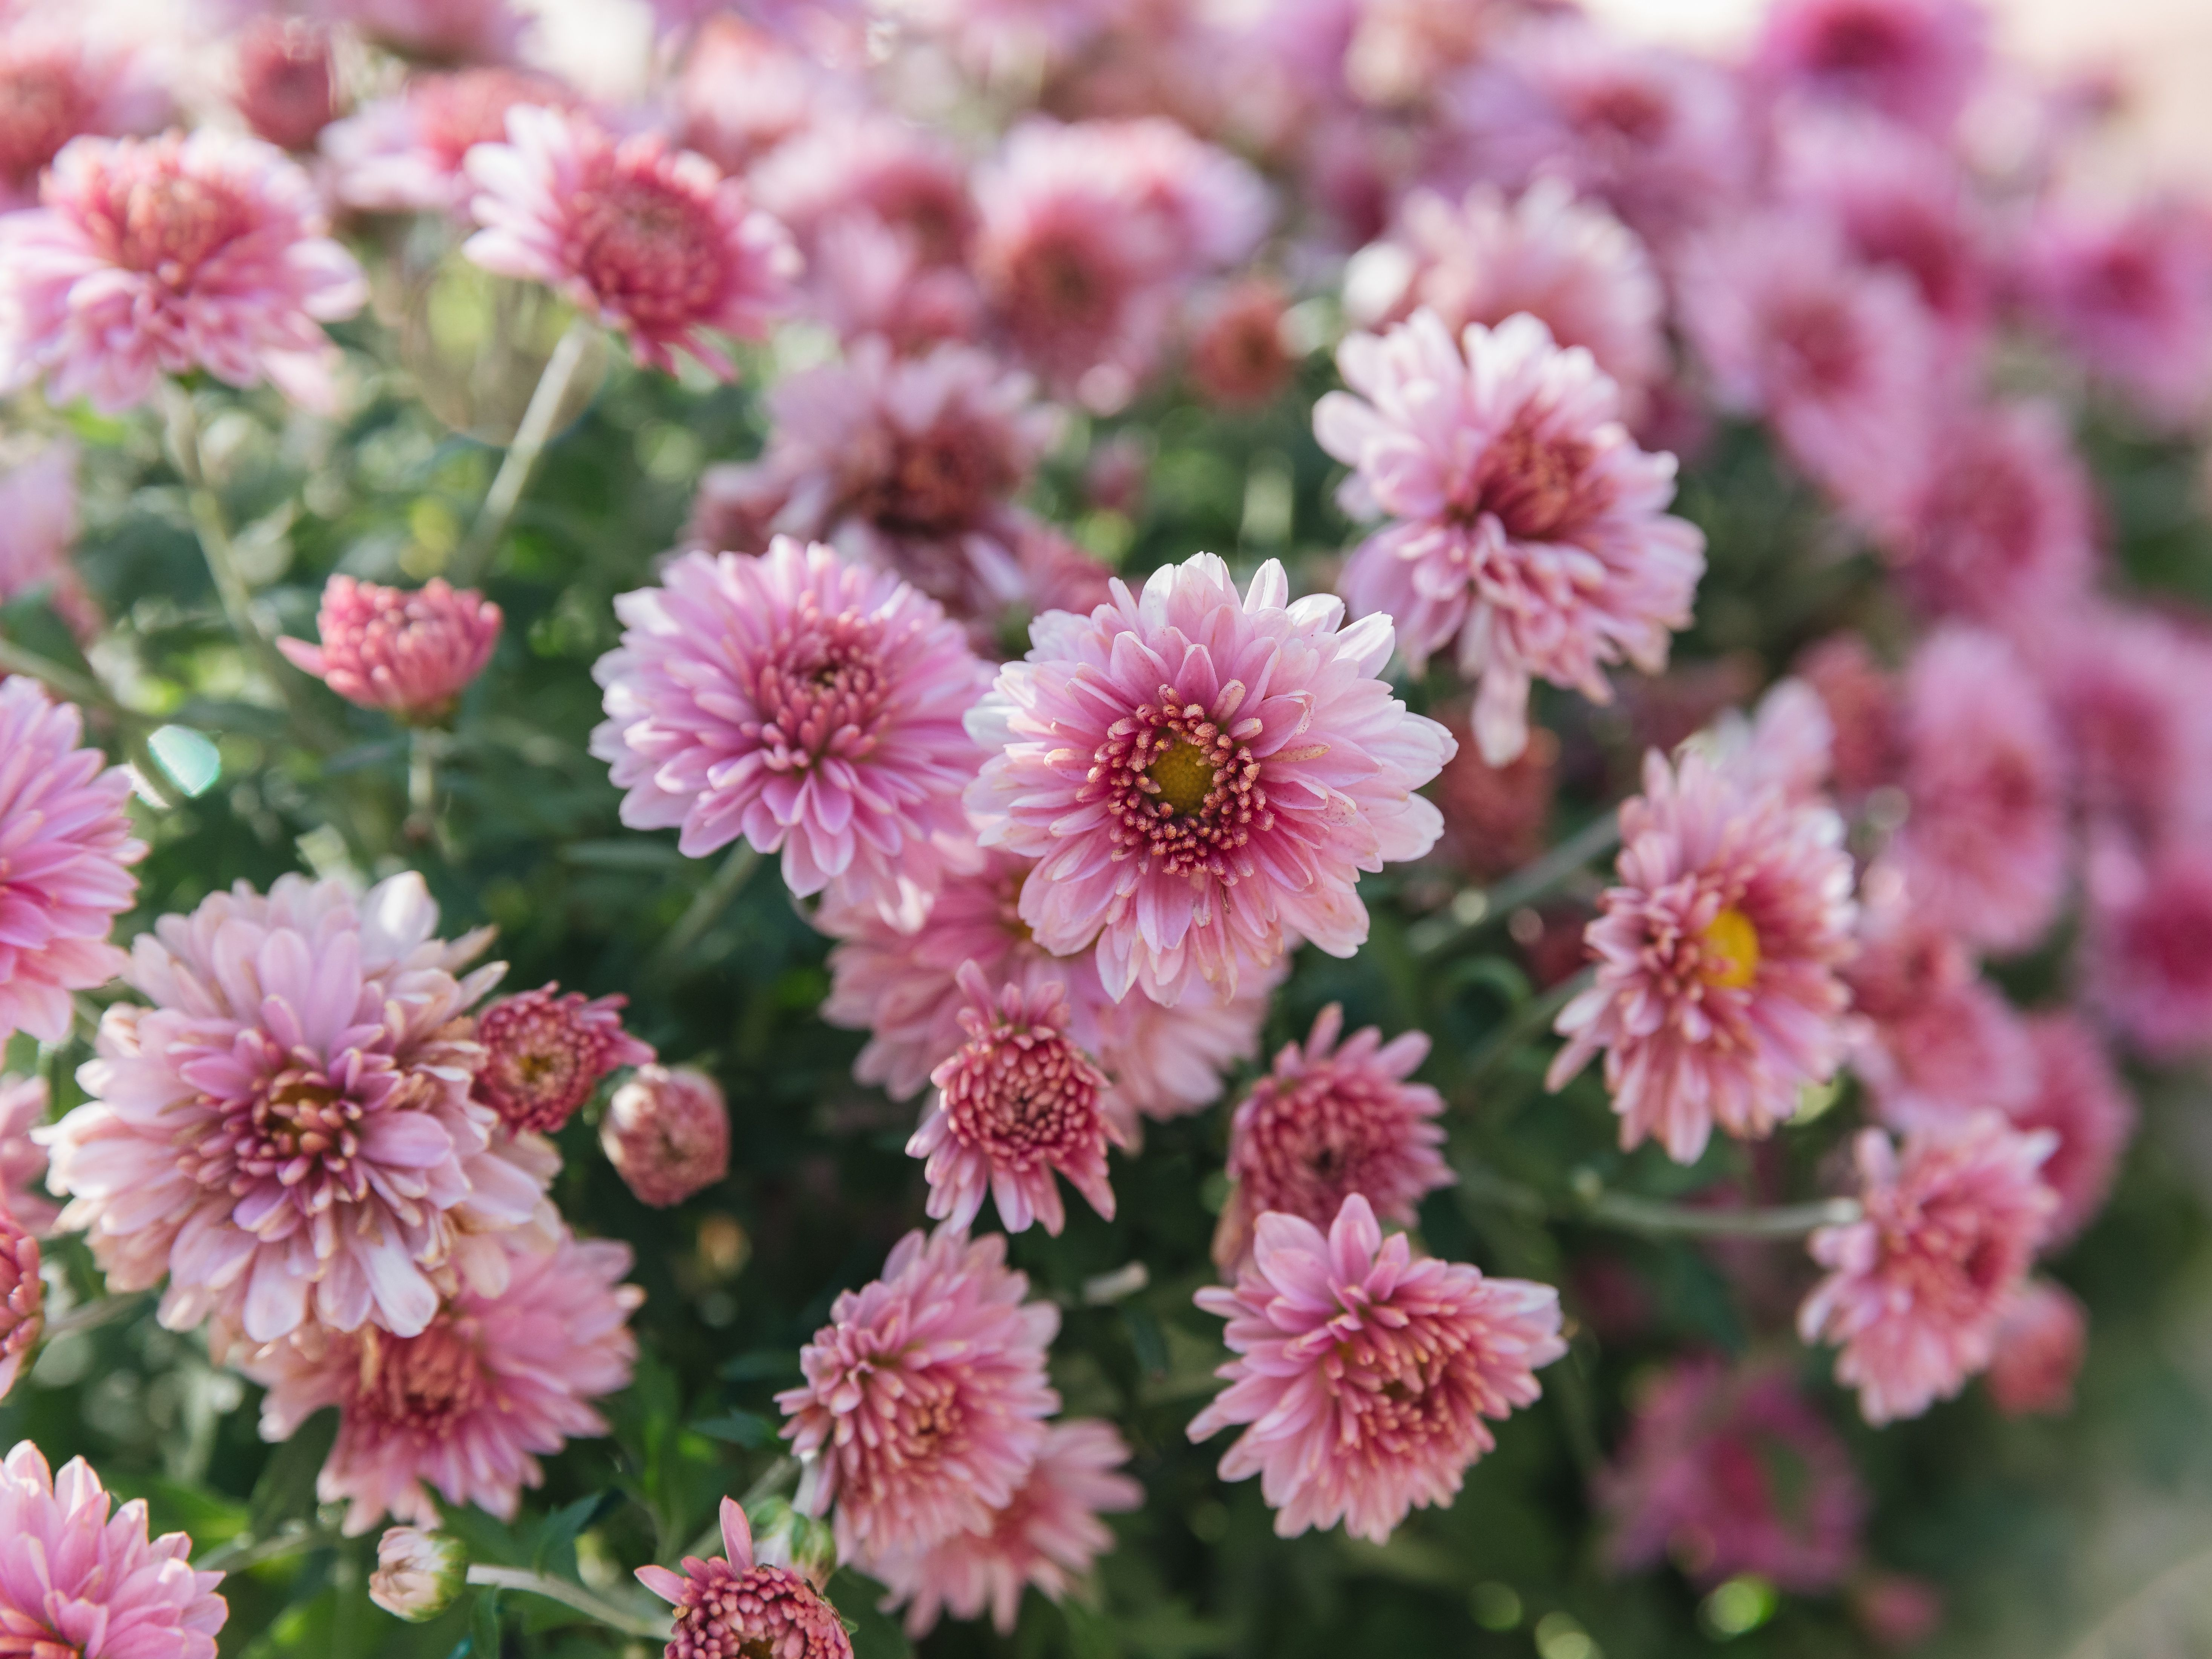 Hardy Chrysanthemums Garden Mums Plant Care Growing Guide